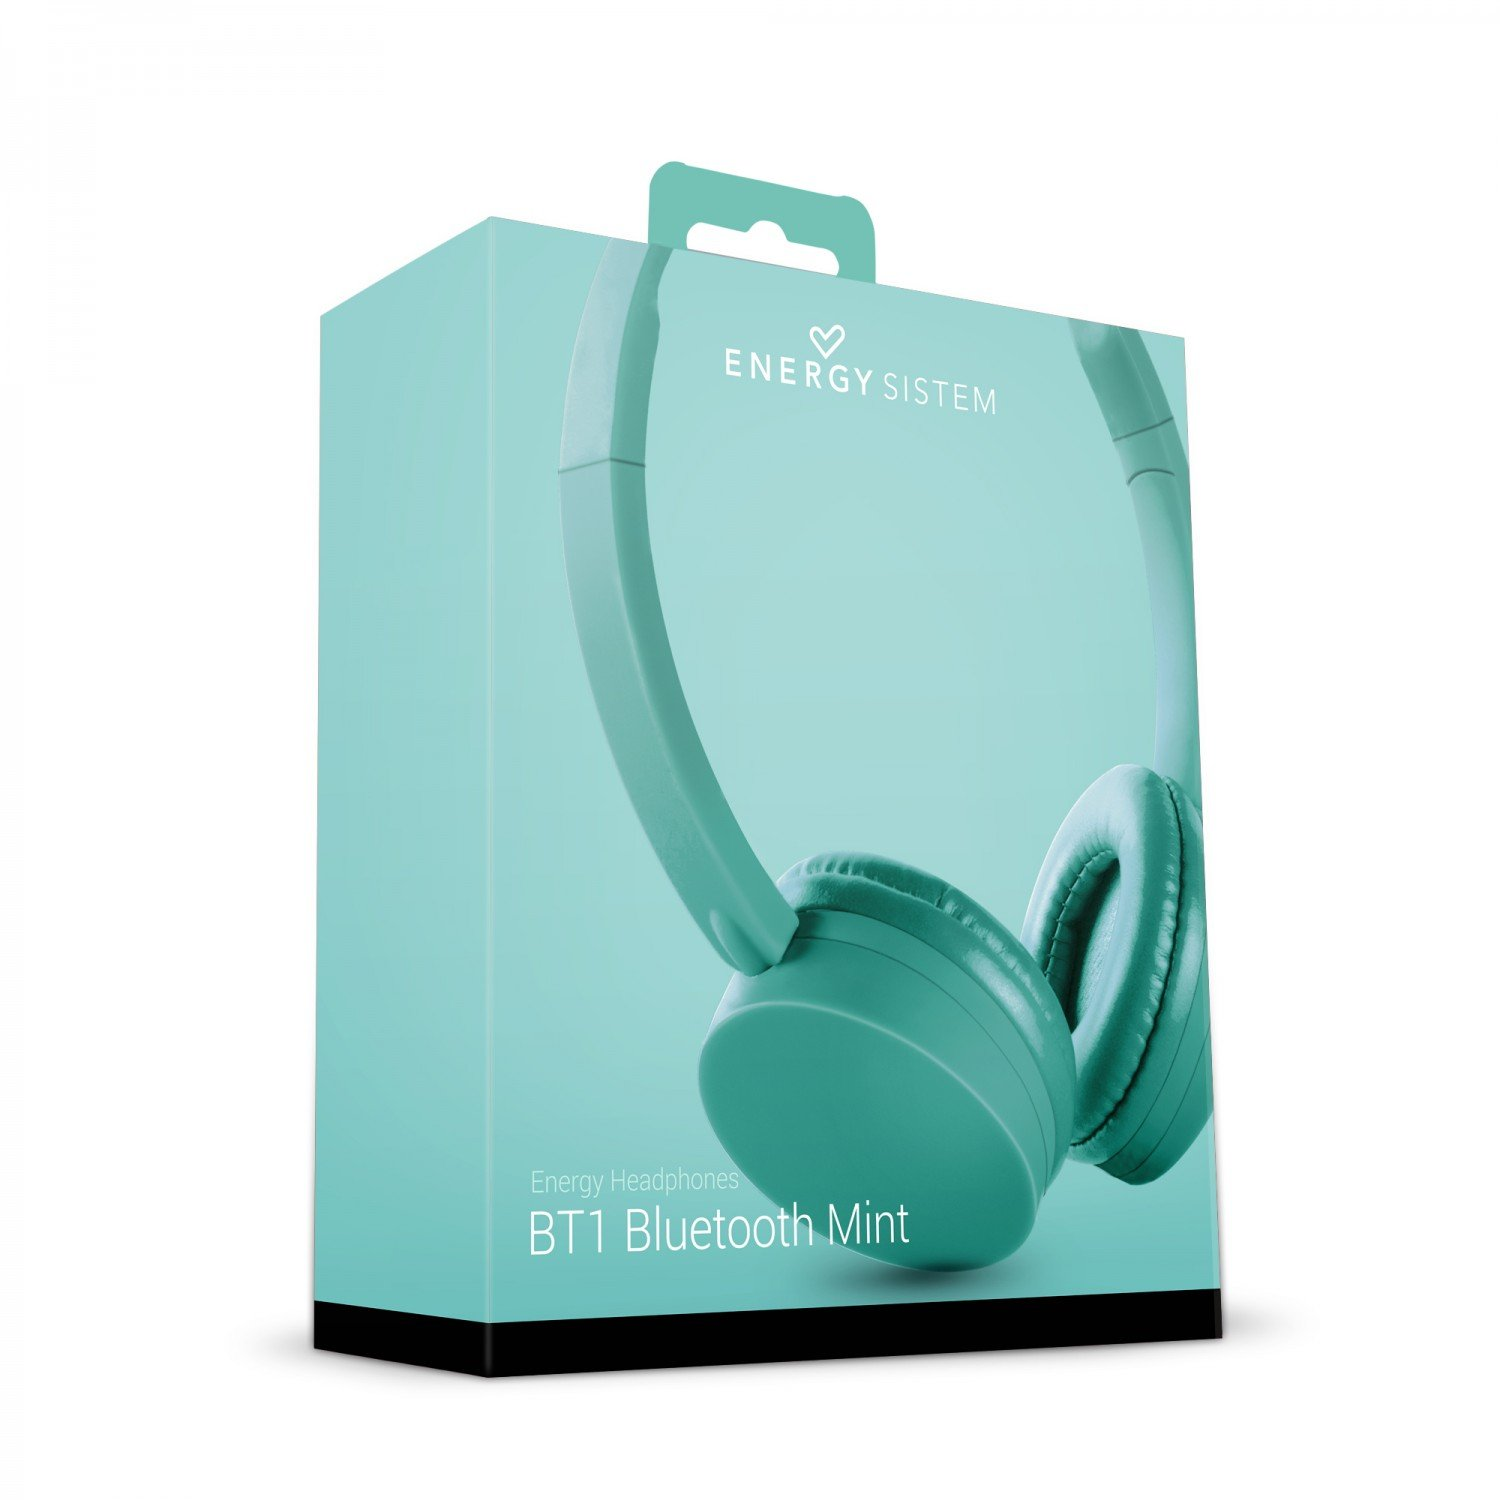 Amazon.com: Energy Headphones BT1 Bluetooth Mint (Mic, Control Talk, rechargeable battery and lightweight): Clothing